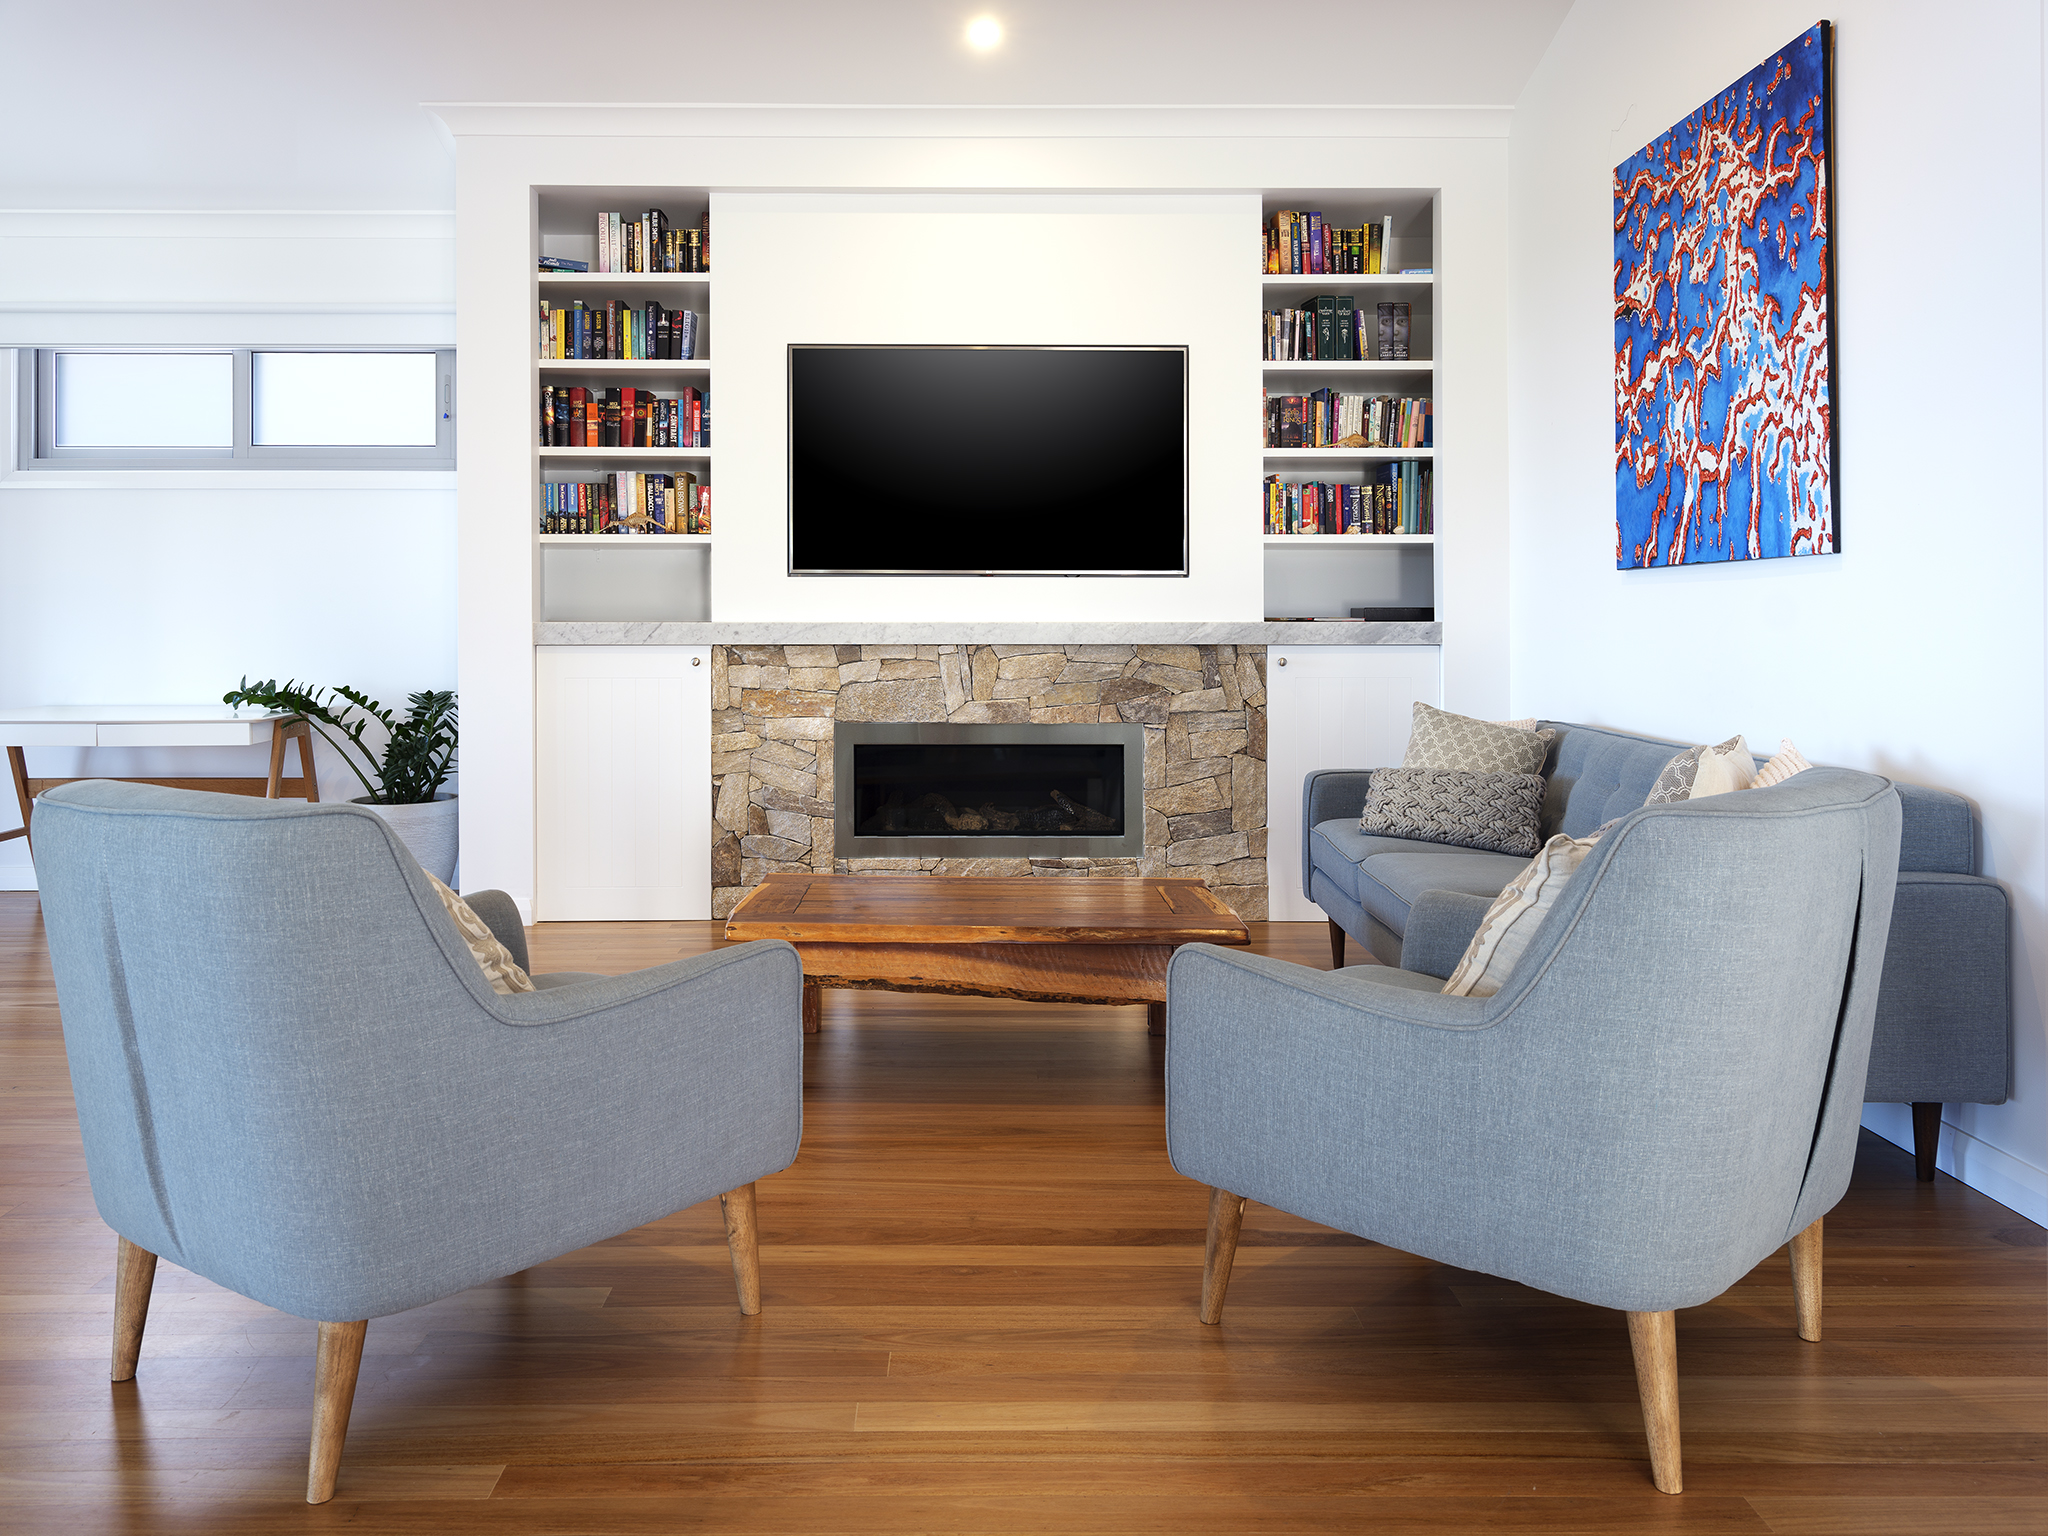 Loungeroom sitting room library new build renovation extension killcare central coast gas fire stone cladding marble mantle.jpg